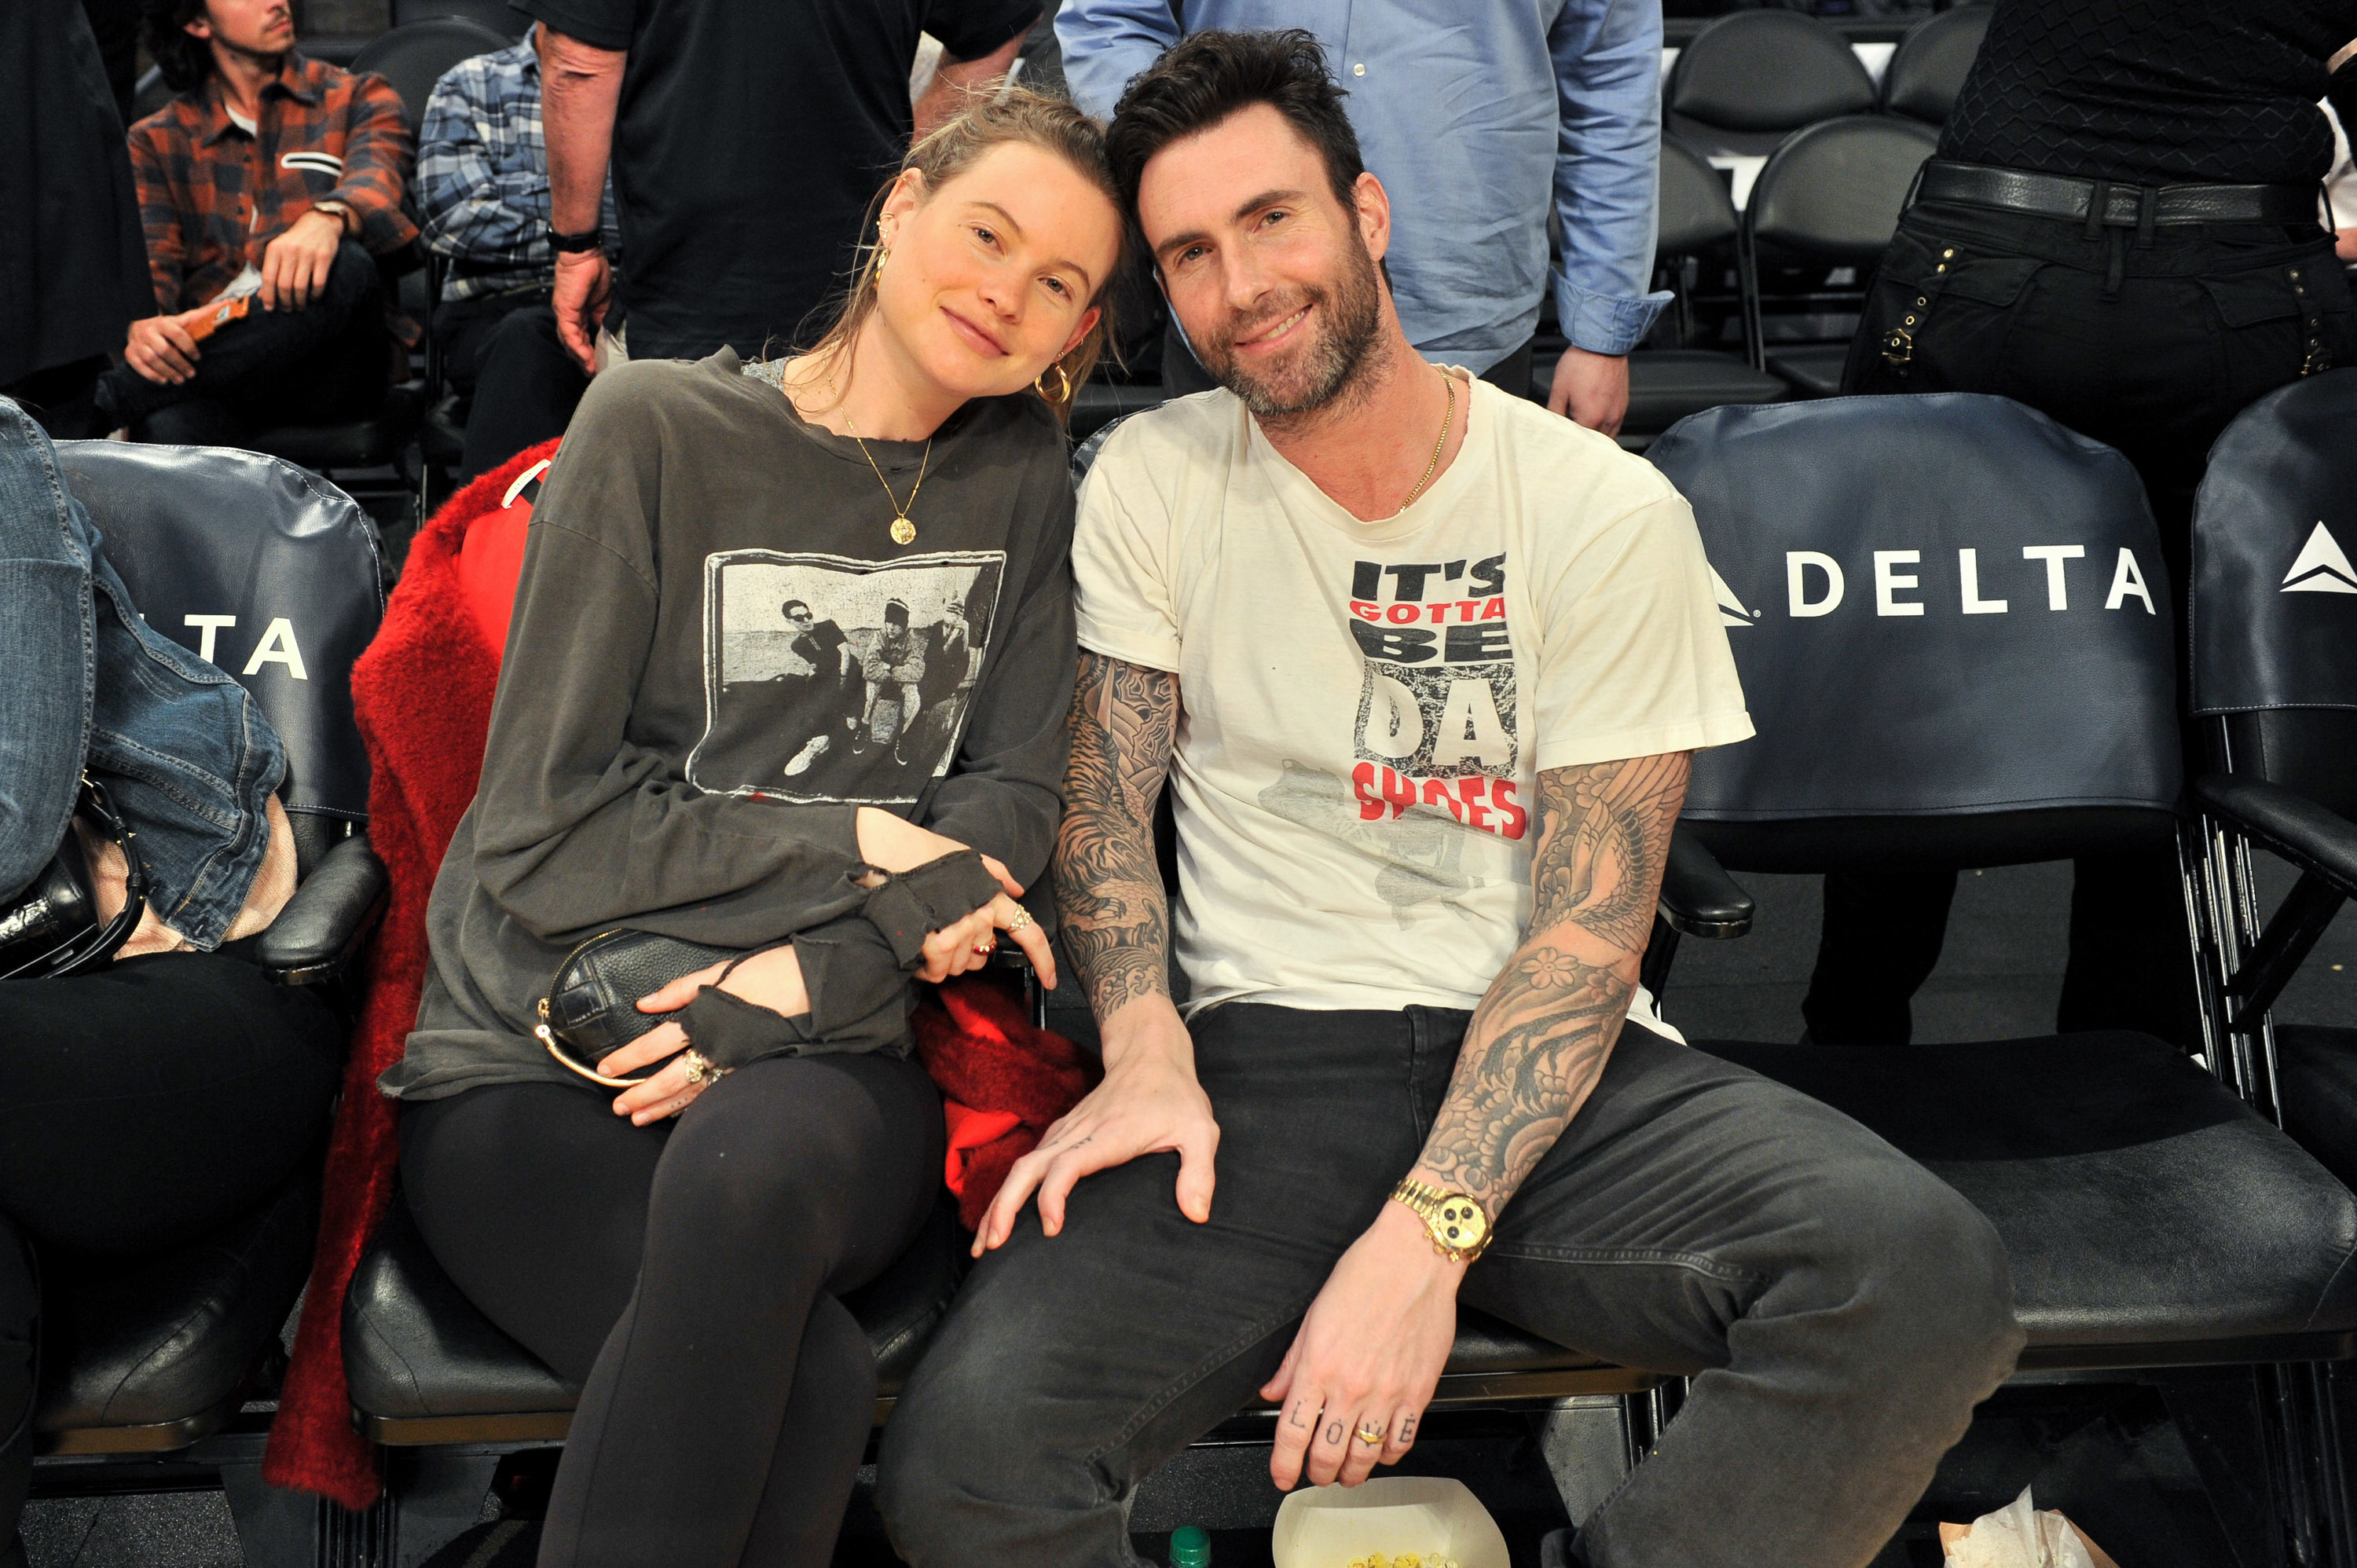 Adam Levine and Behati Prinsloo attend a basketball game between the Los Angeles Lakers and the Houston Rockets at Staples Center in Los Angeles on Dec. 3, 2017.